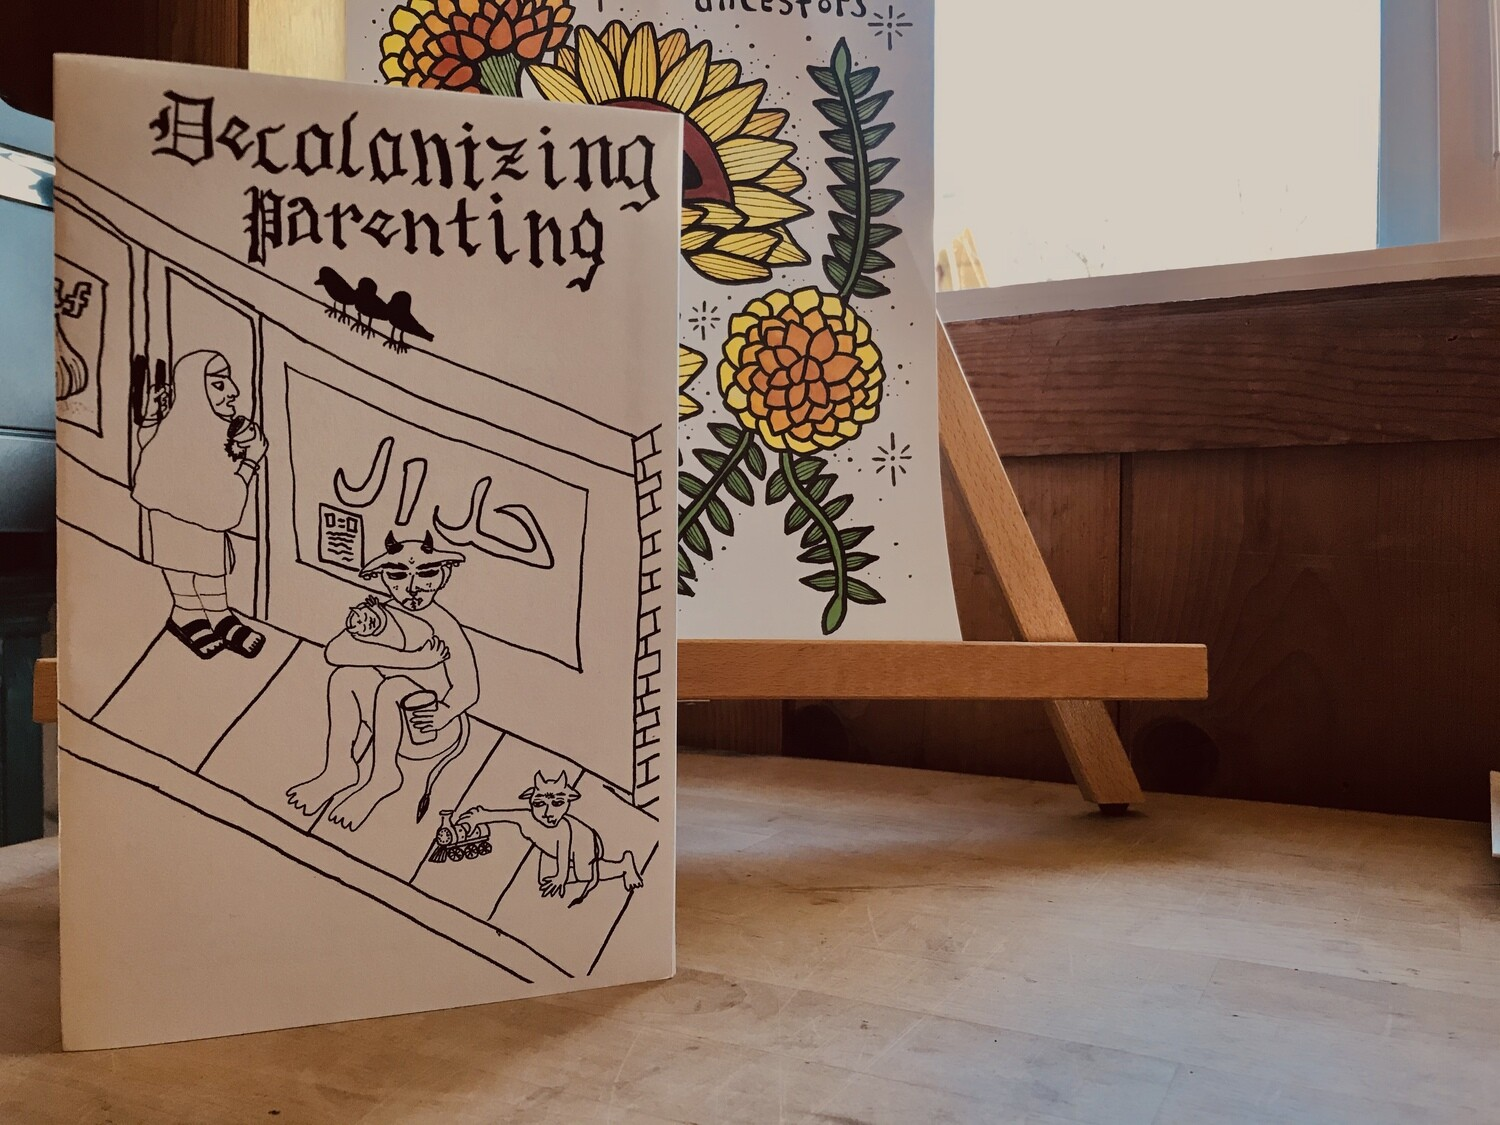 Decolonizing Parenting Issue 2: a zine by and for queer parents of color